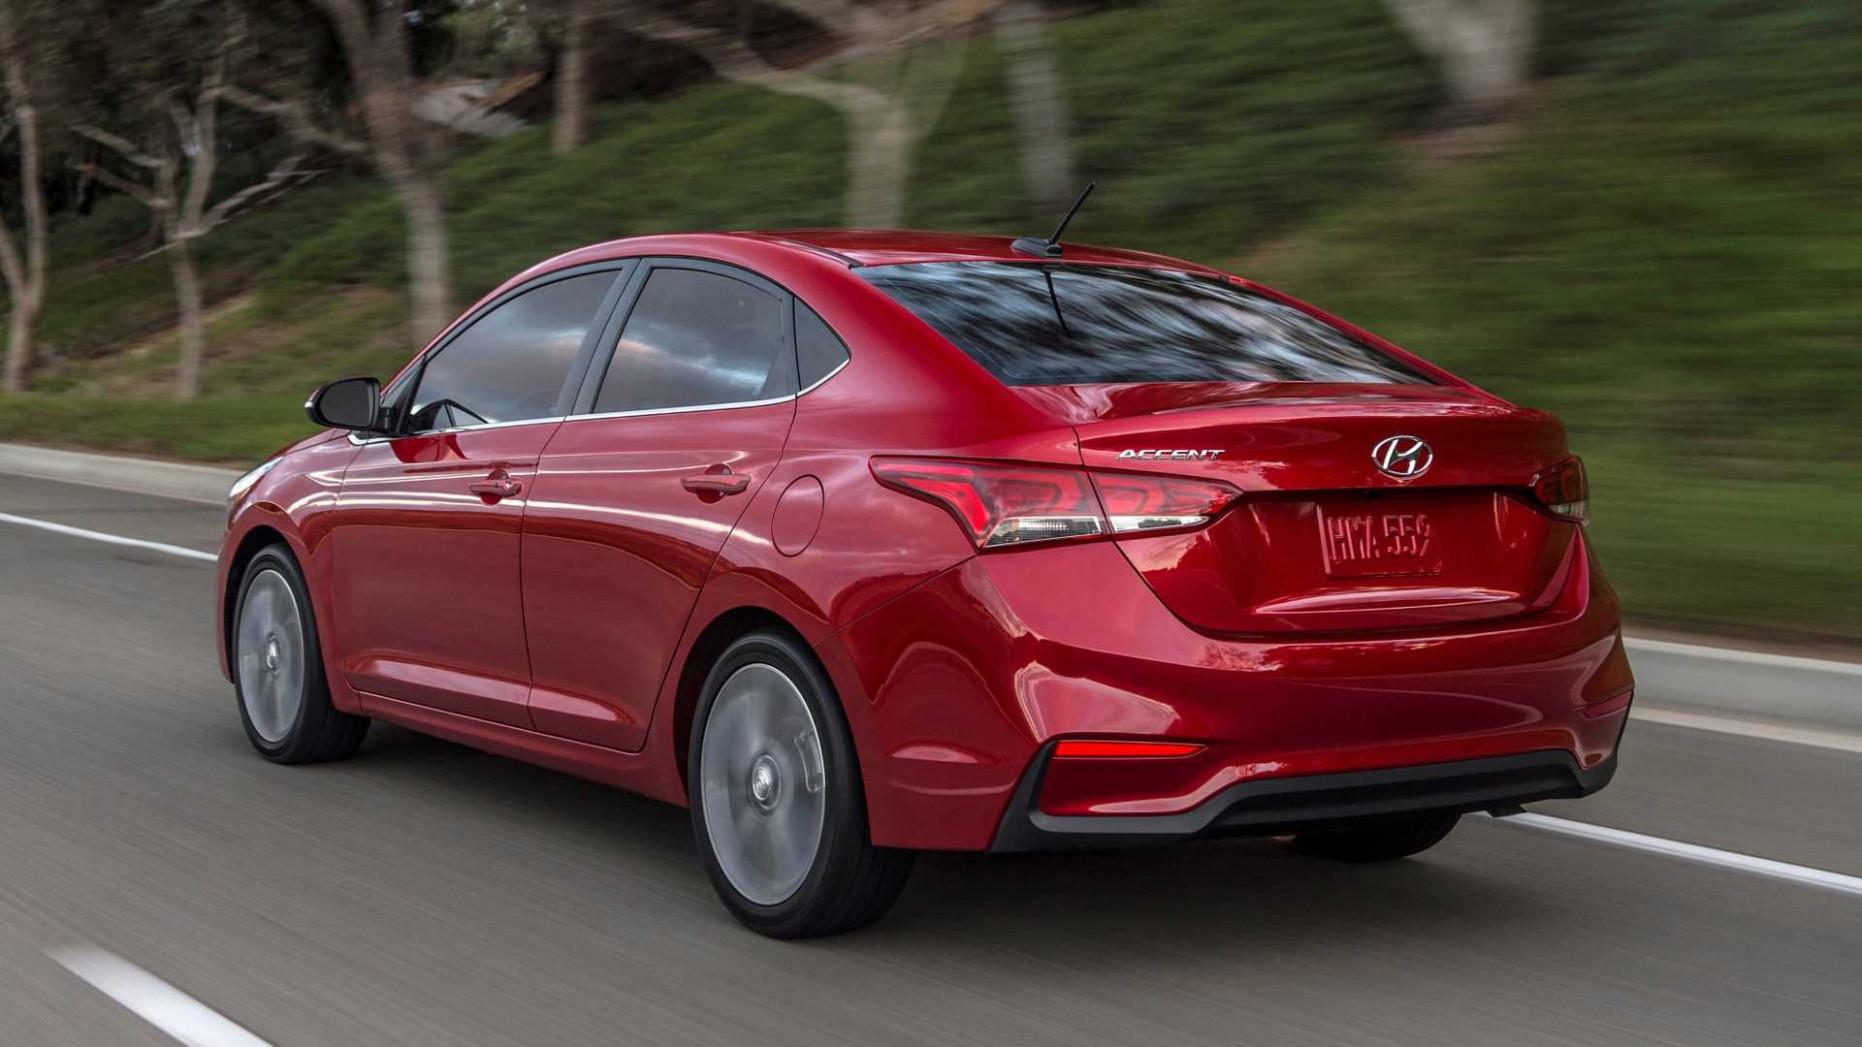 6 Hyundai Accent Gets New Engine, Gearbox For Better Fuel Economy